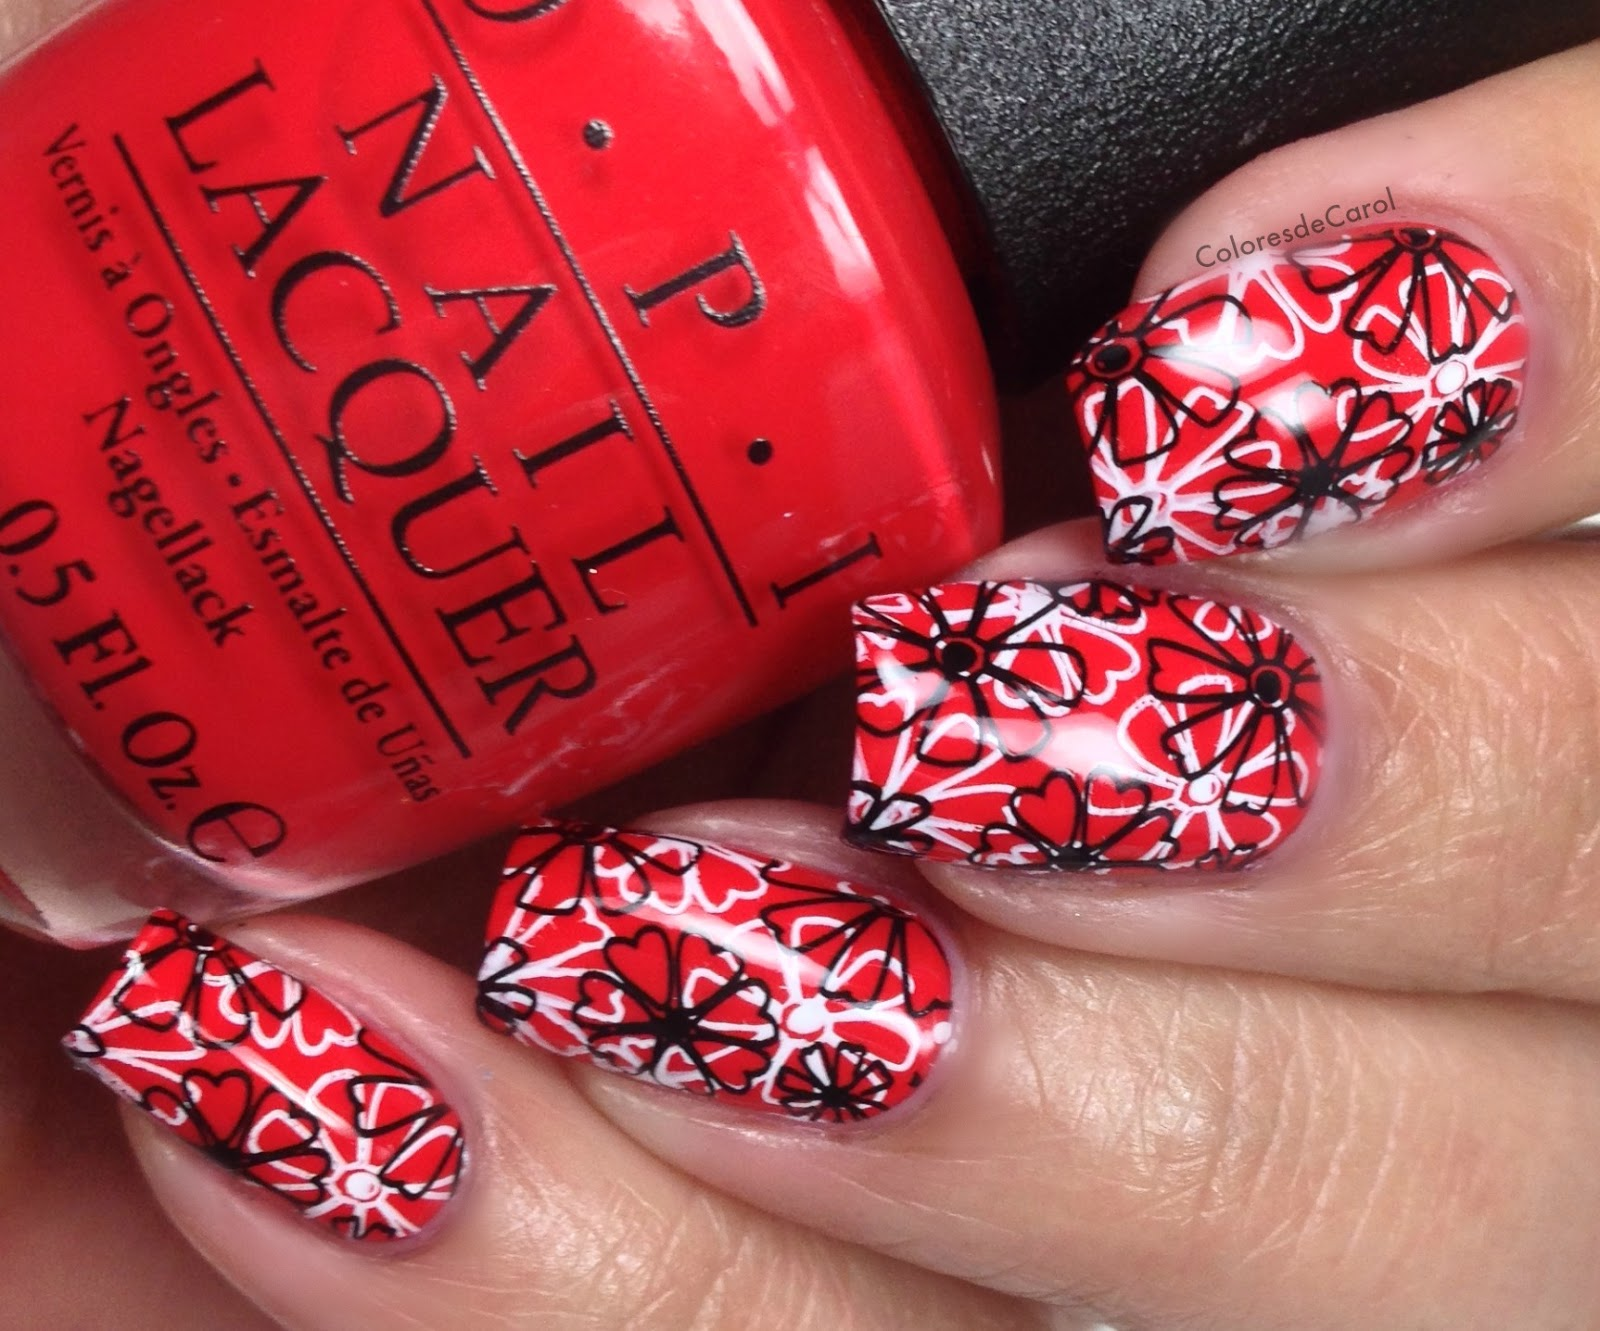 Colores de carol opi coca cola nail art sorry im fizzy today stamped using the plate w04 from winstonia and mdu red stamping polish prinsesfo Gallery